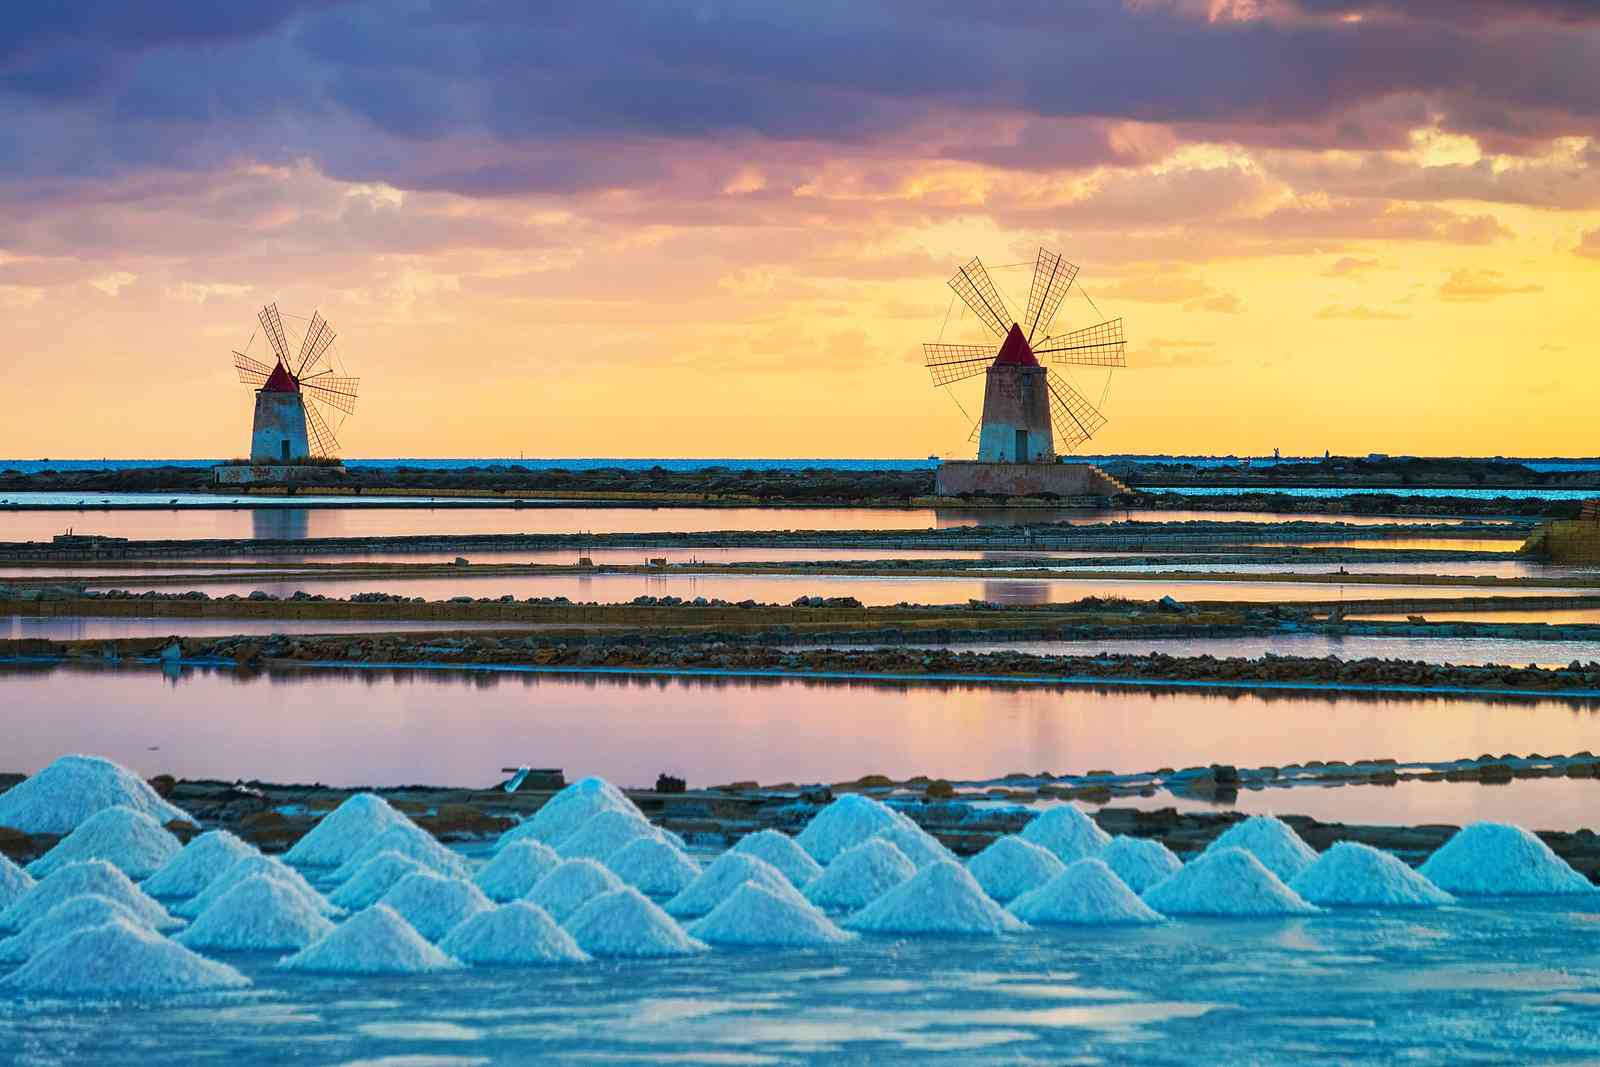 Marsala is also known for its salt pans (Shutterstock)